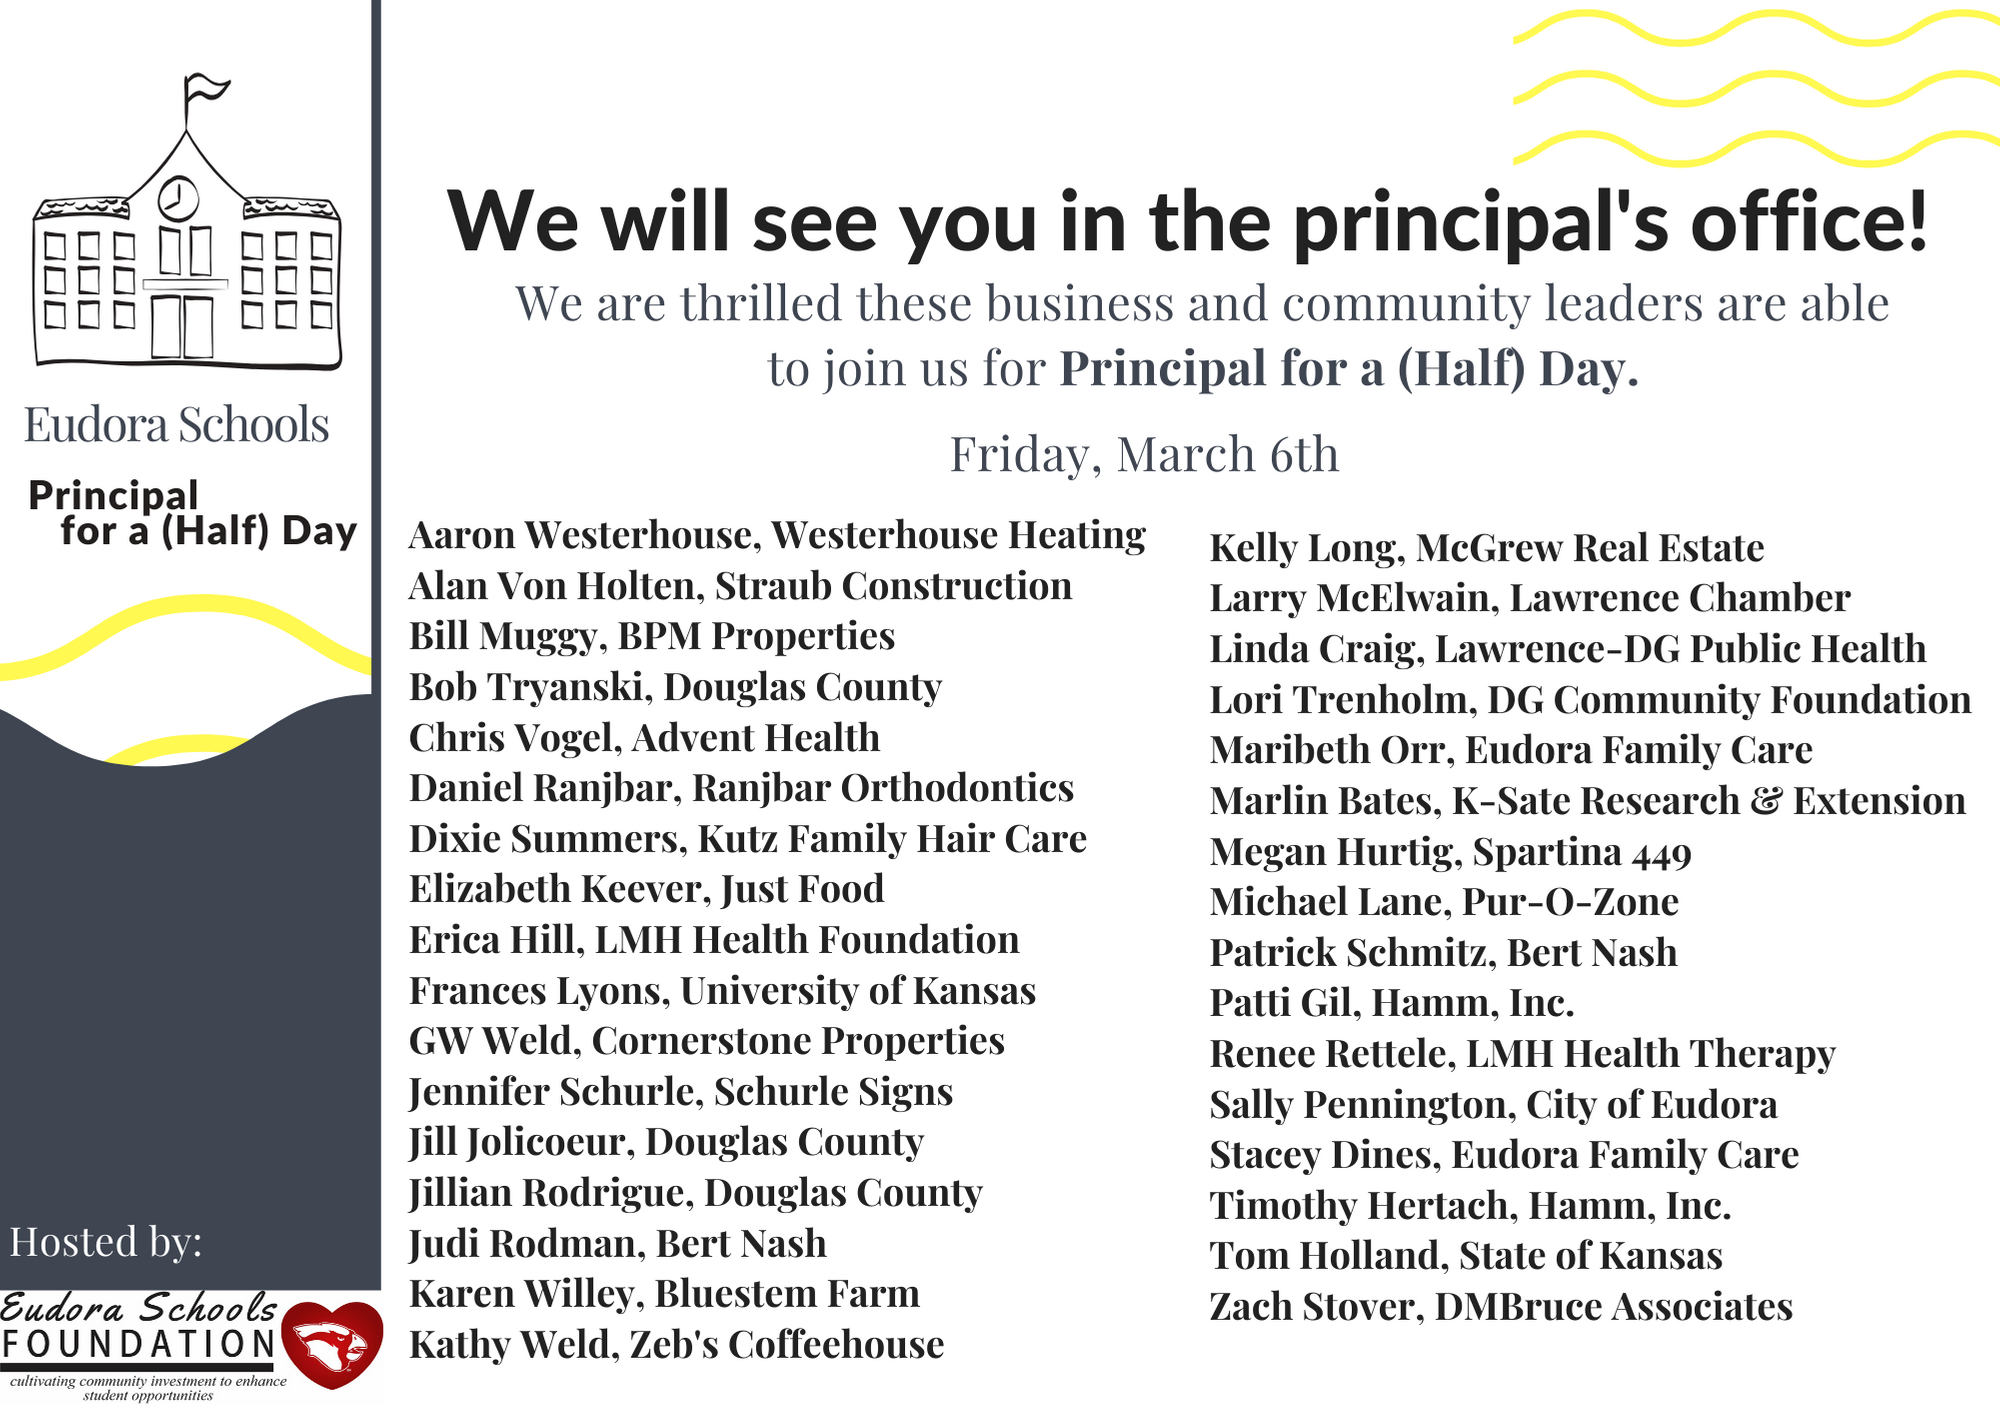 Announcing our 2020 Guest Principals - Local Community and Business Leaders Become School Principals for a (Half) Day.